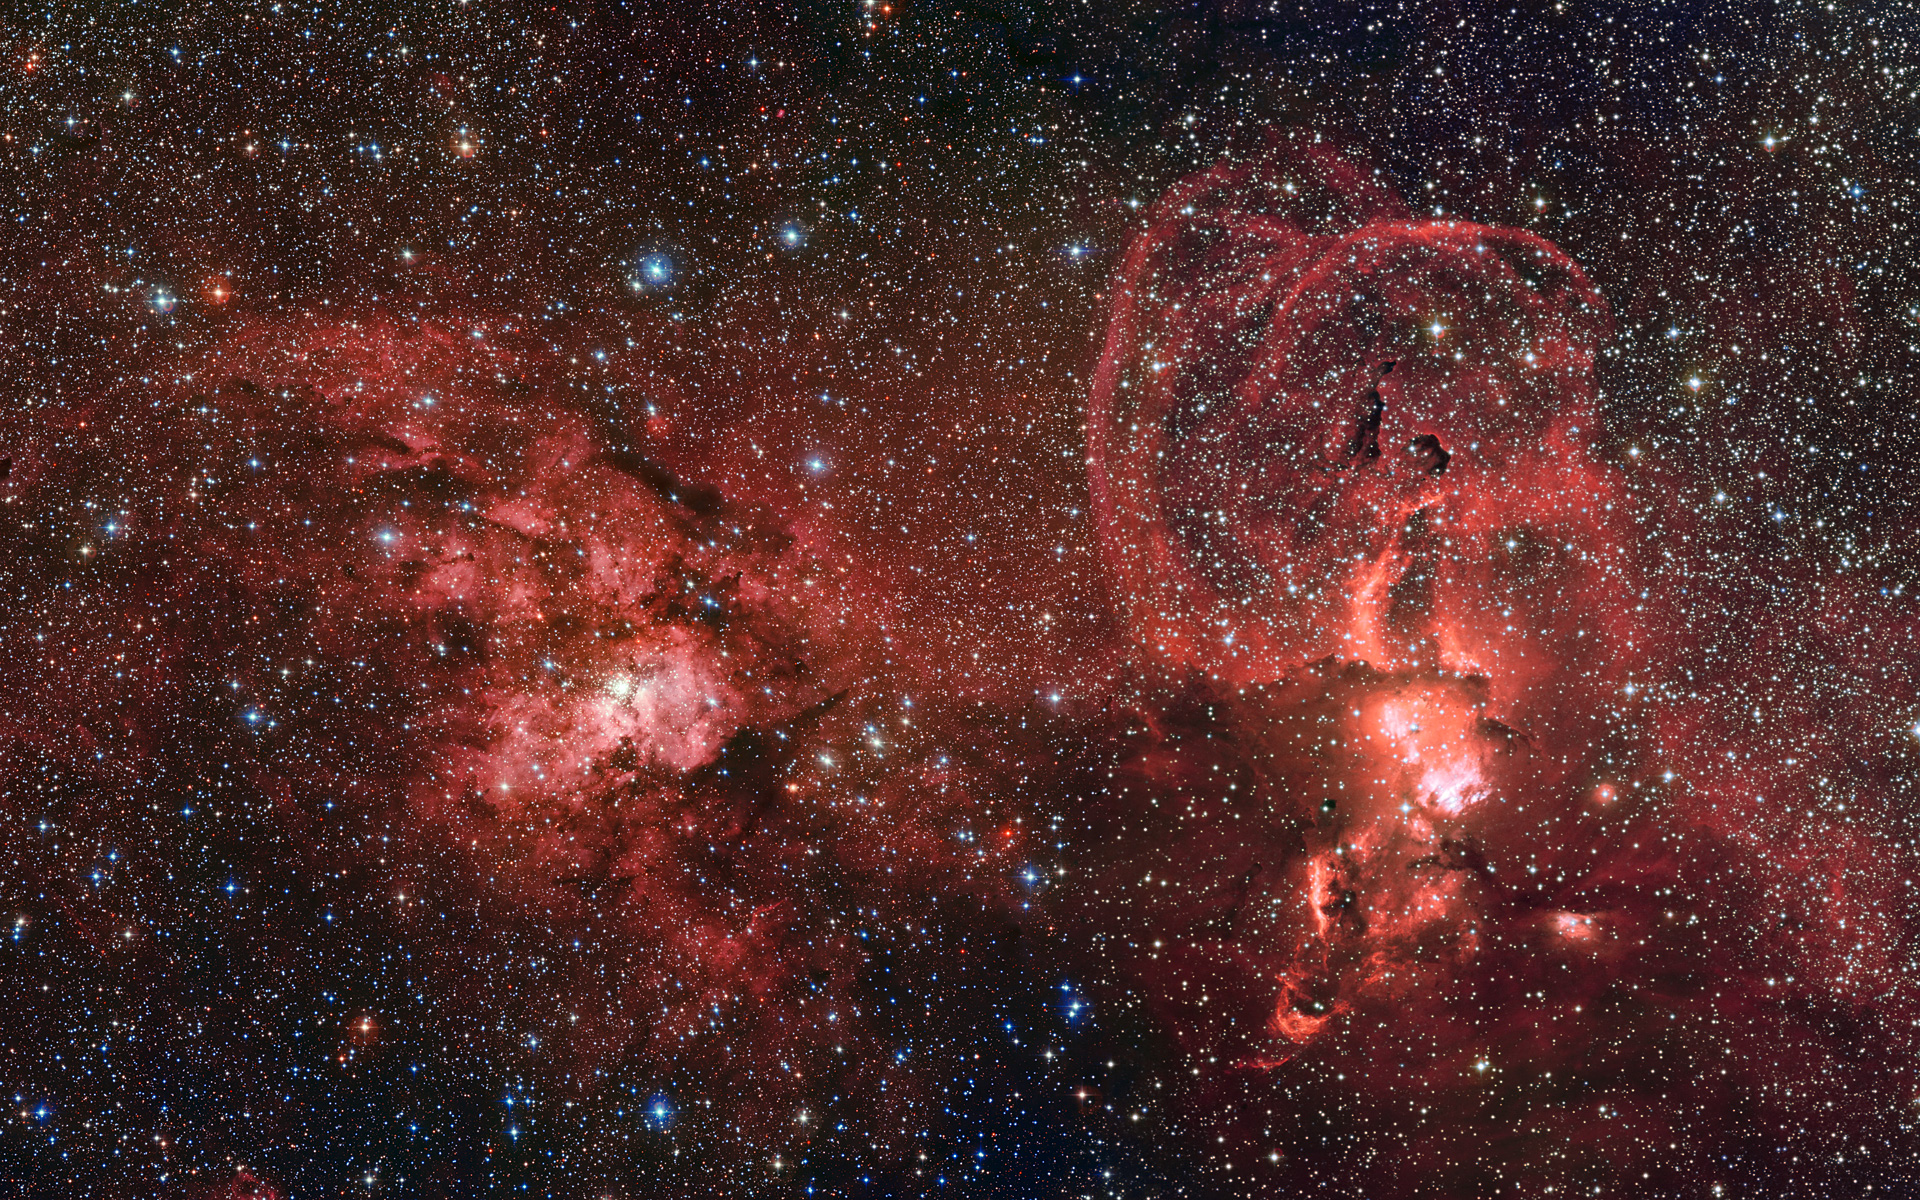 Star Cluster, Nebula Glow Red in Amazing New Photos